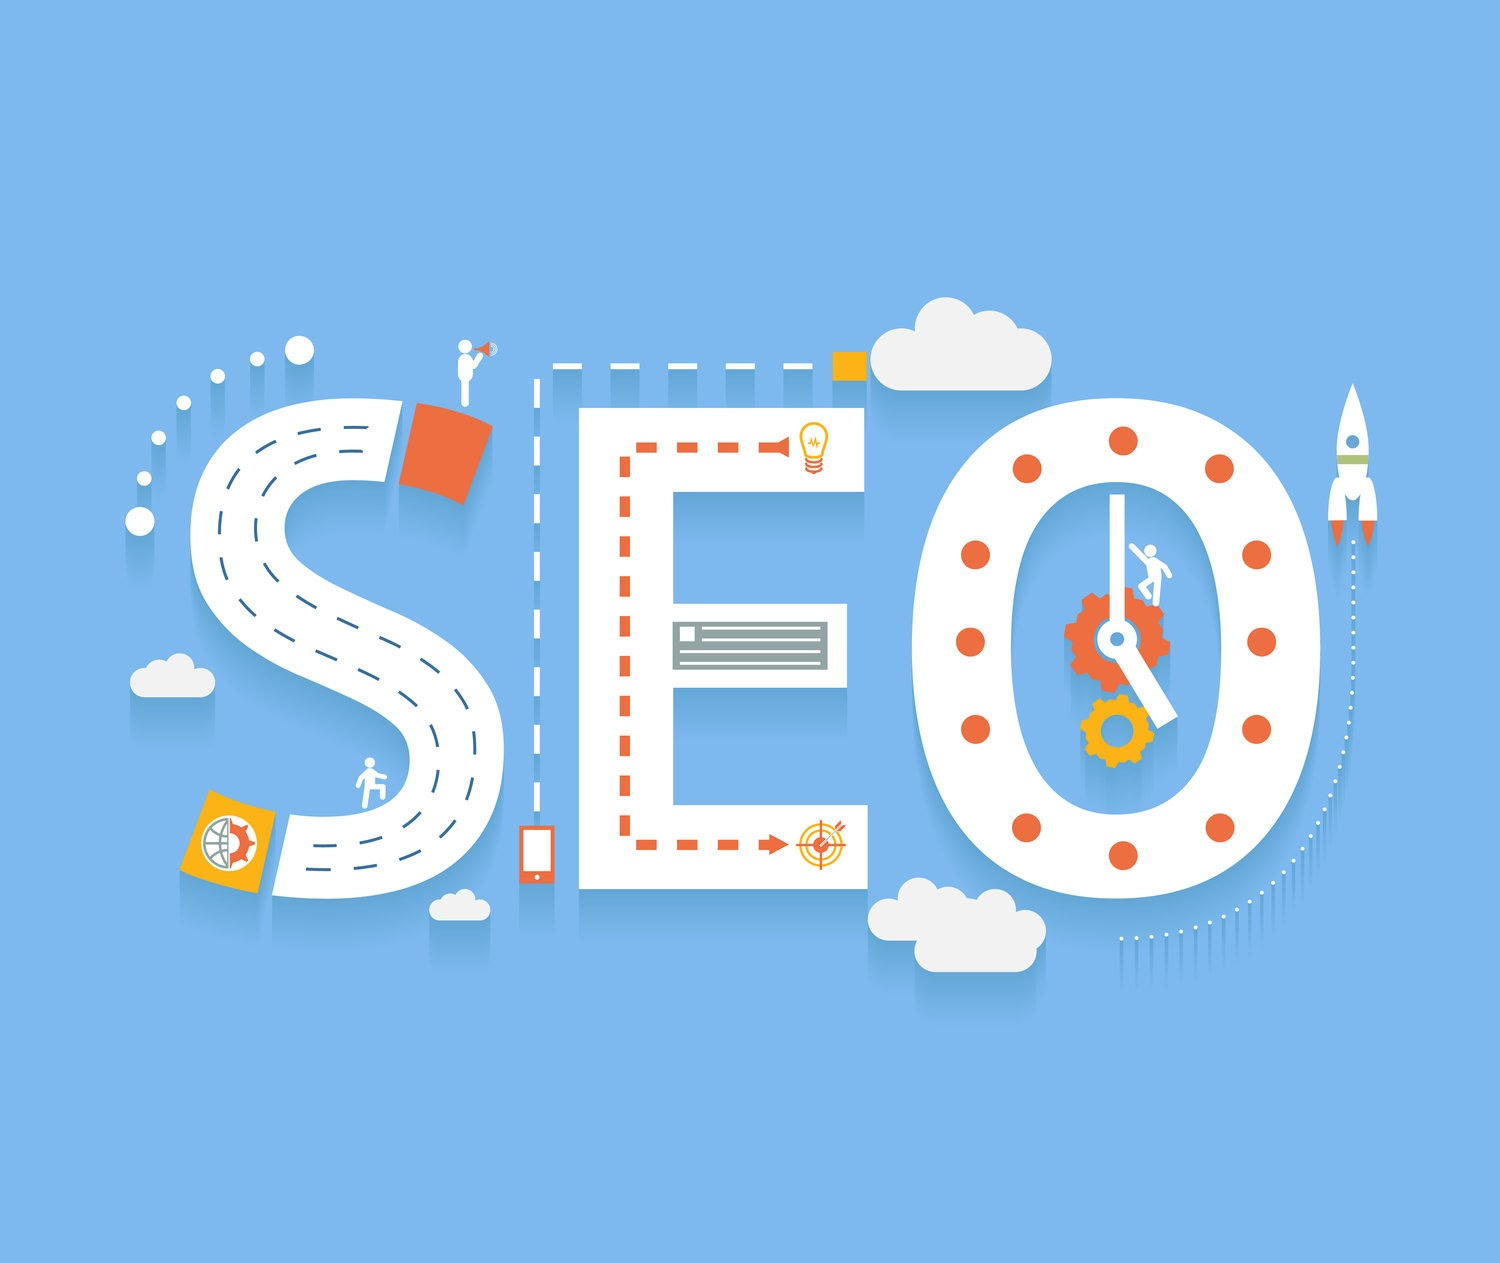 SEO in flat style, success internet searching optimization process illustration concept